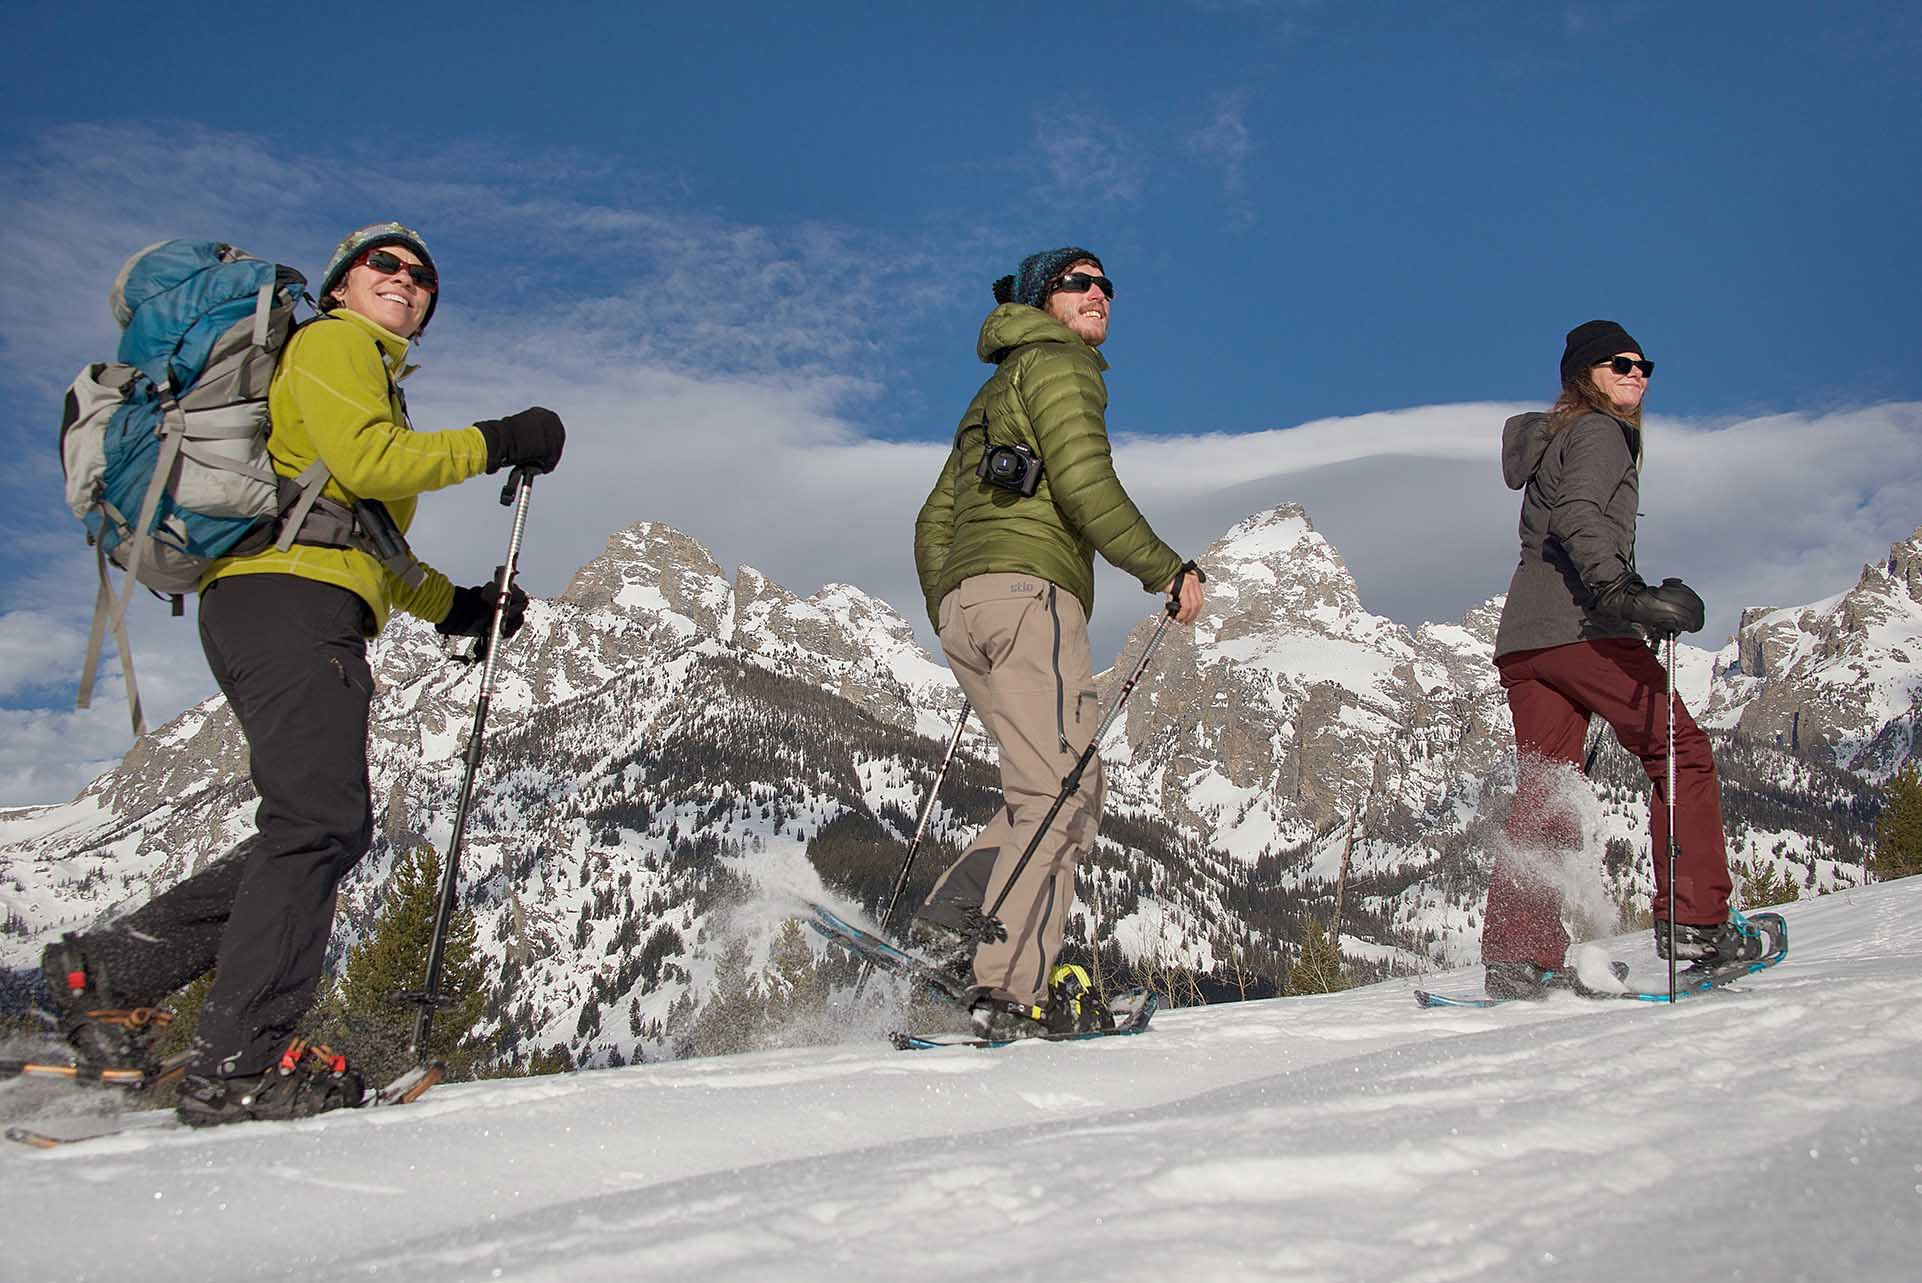 Snowshoeing in Grand Teton National Park